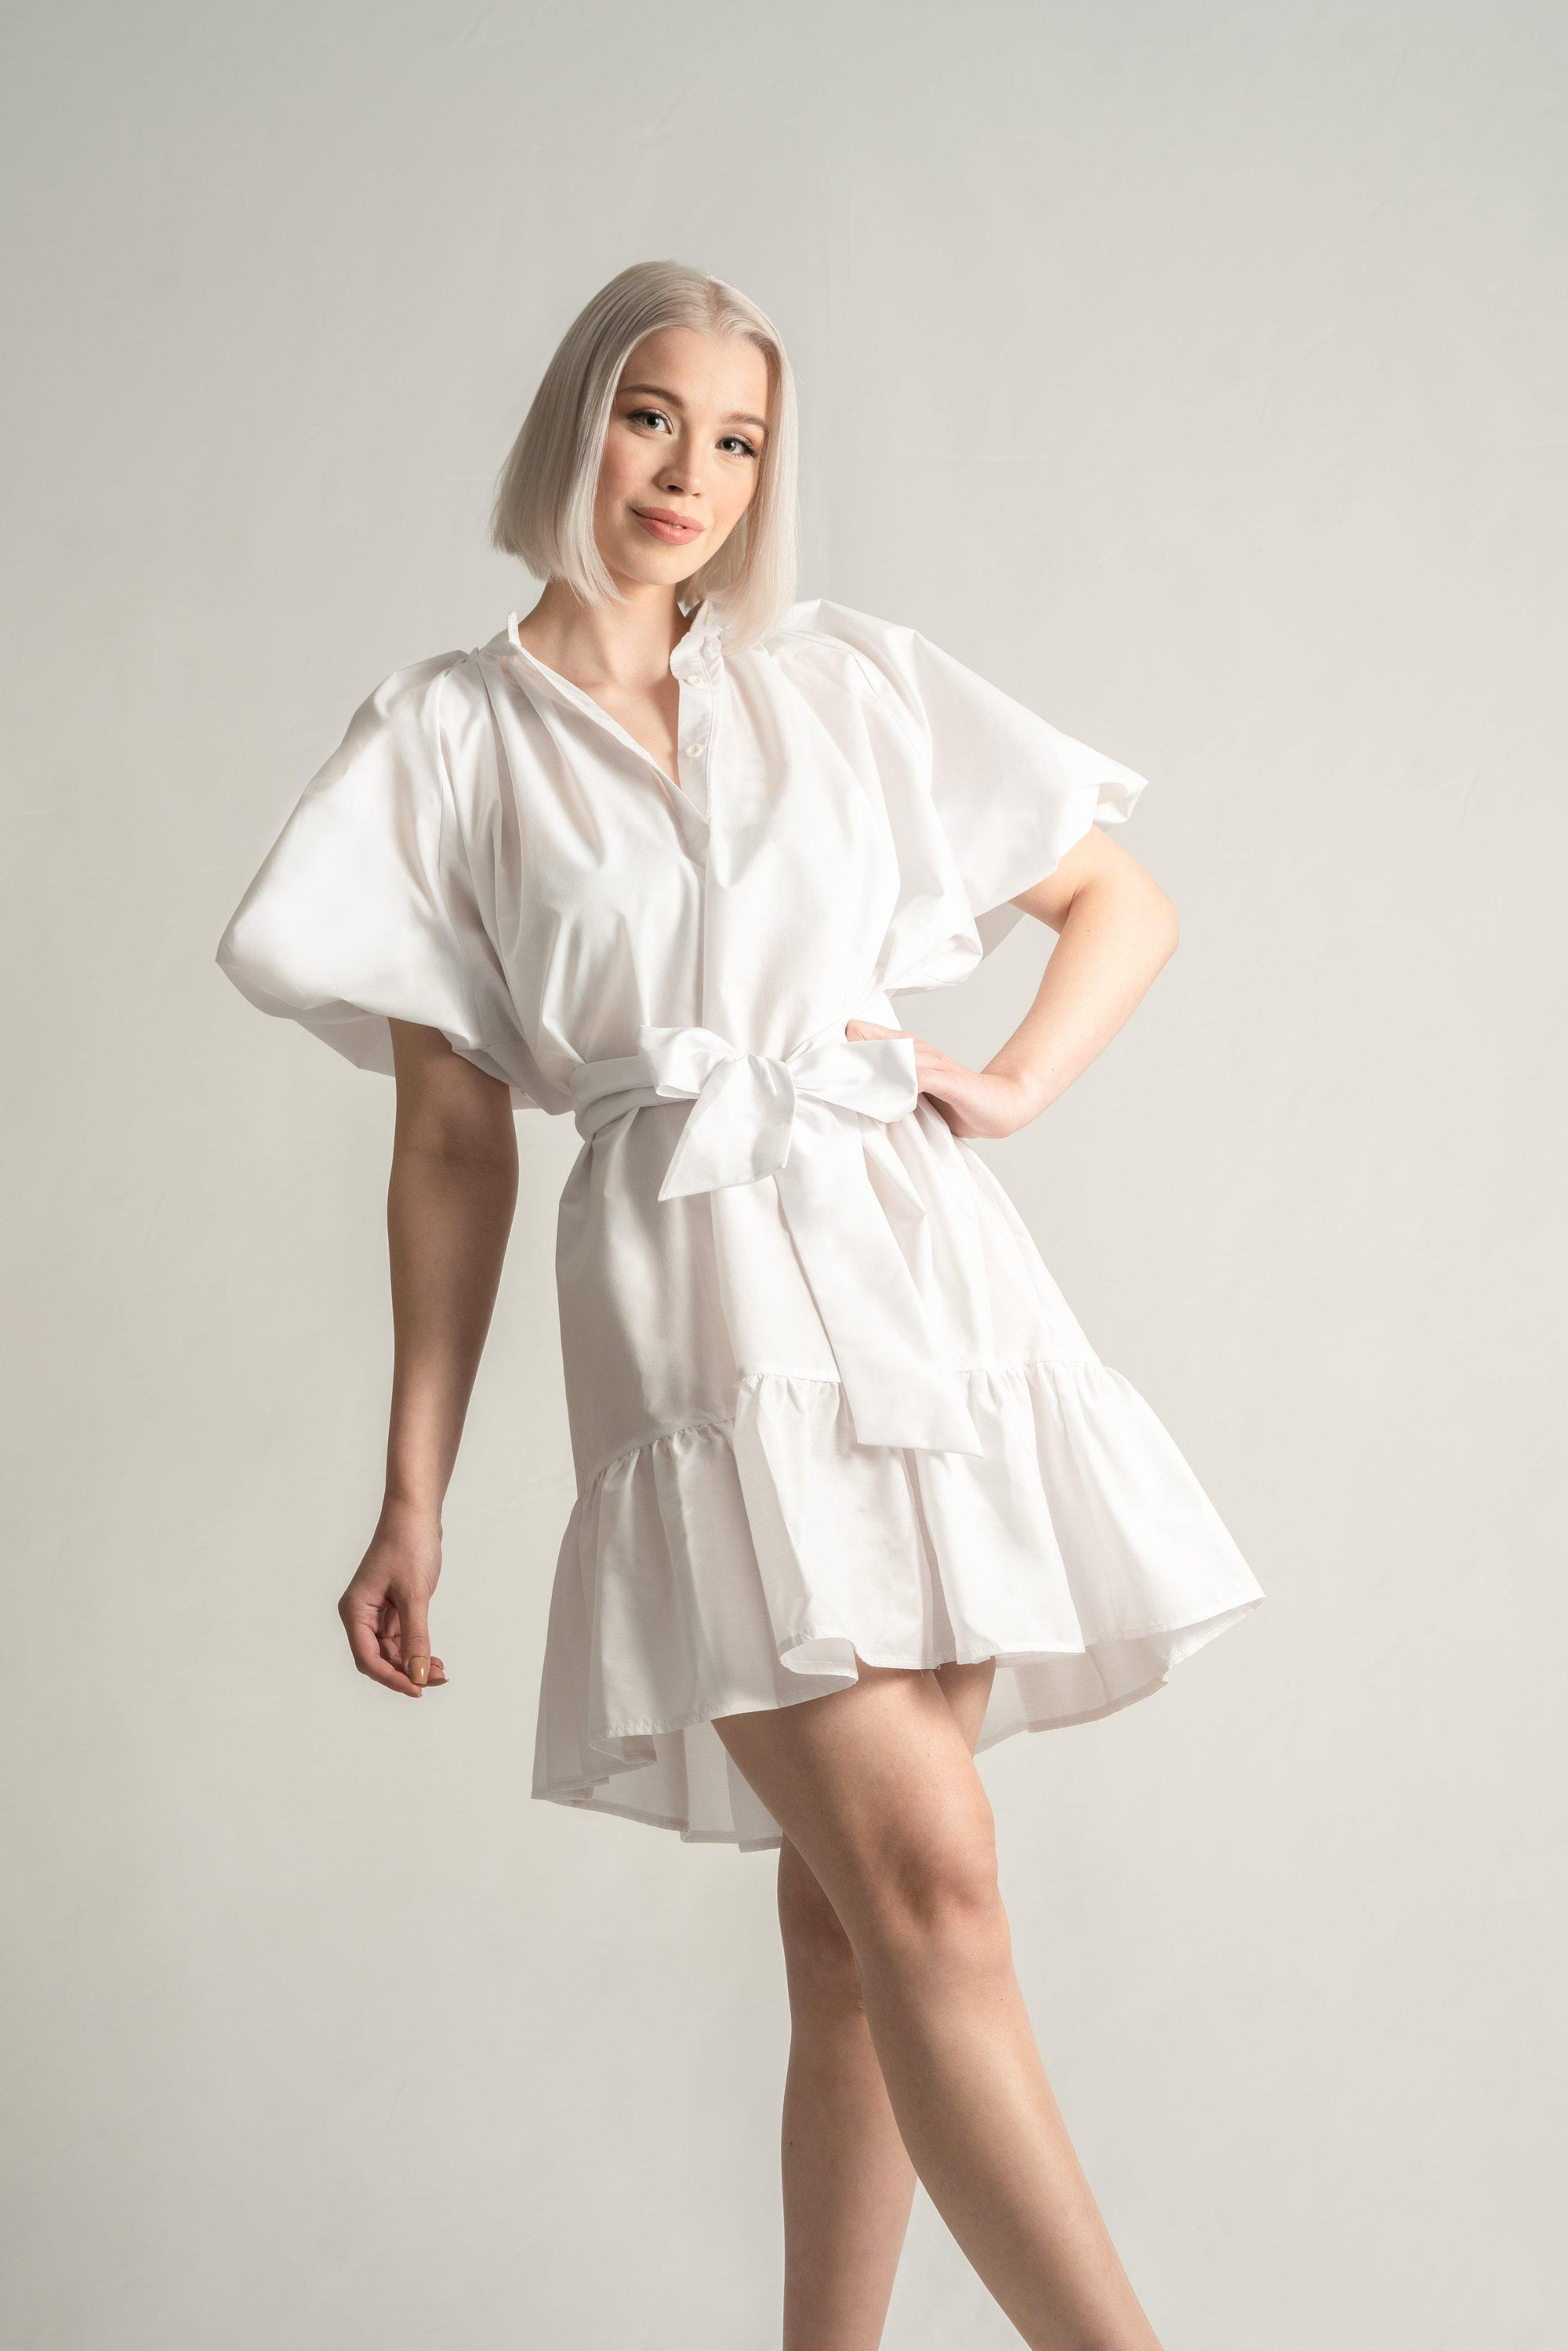 Cloudy White Puffy Sleeve Summer Dress